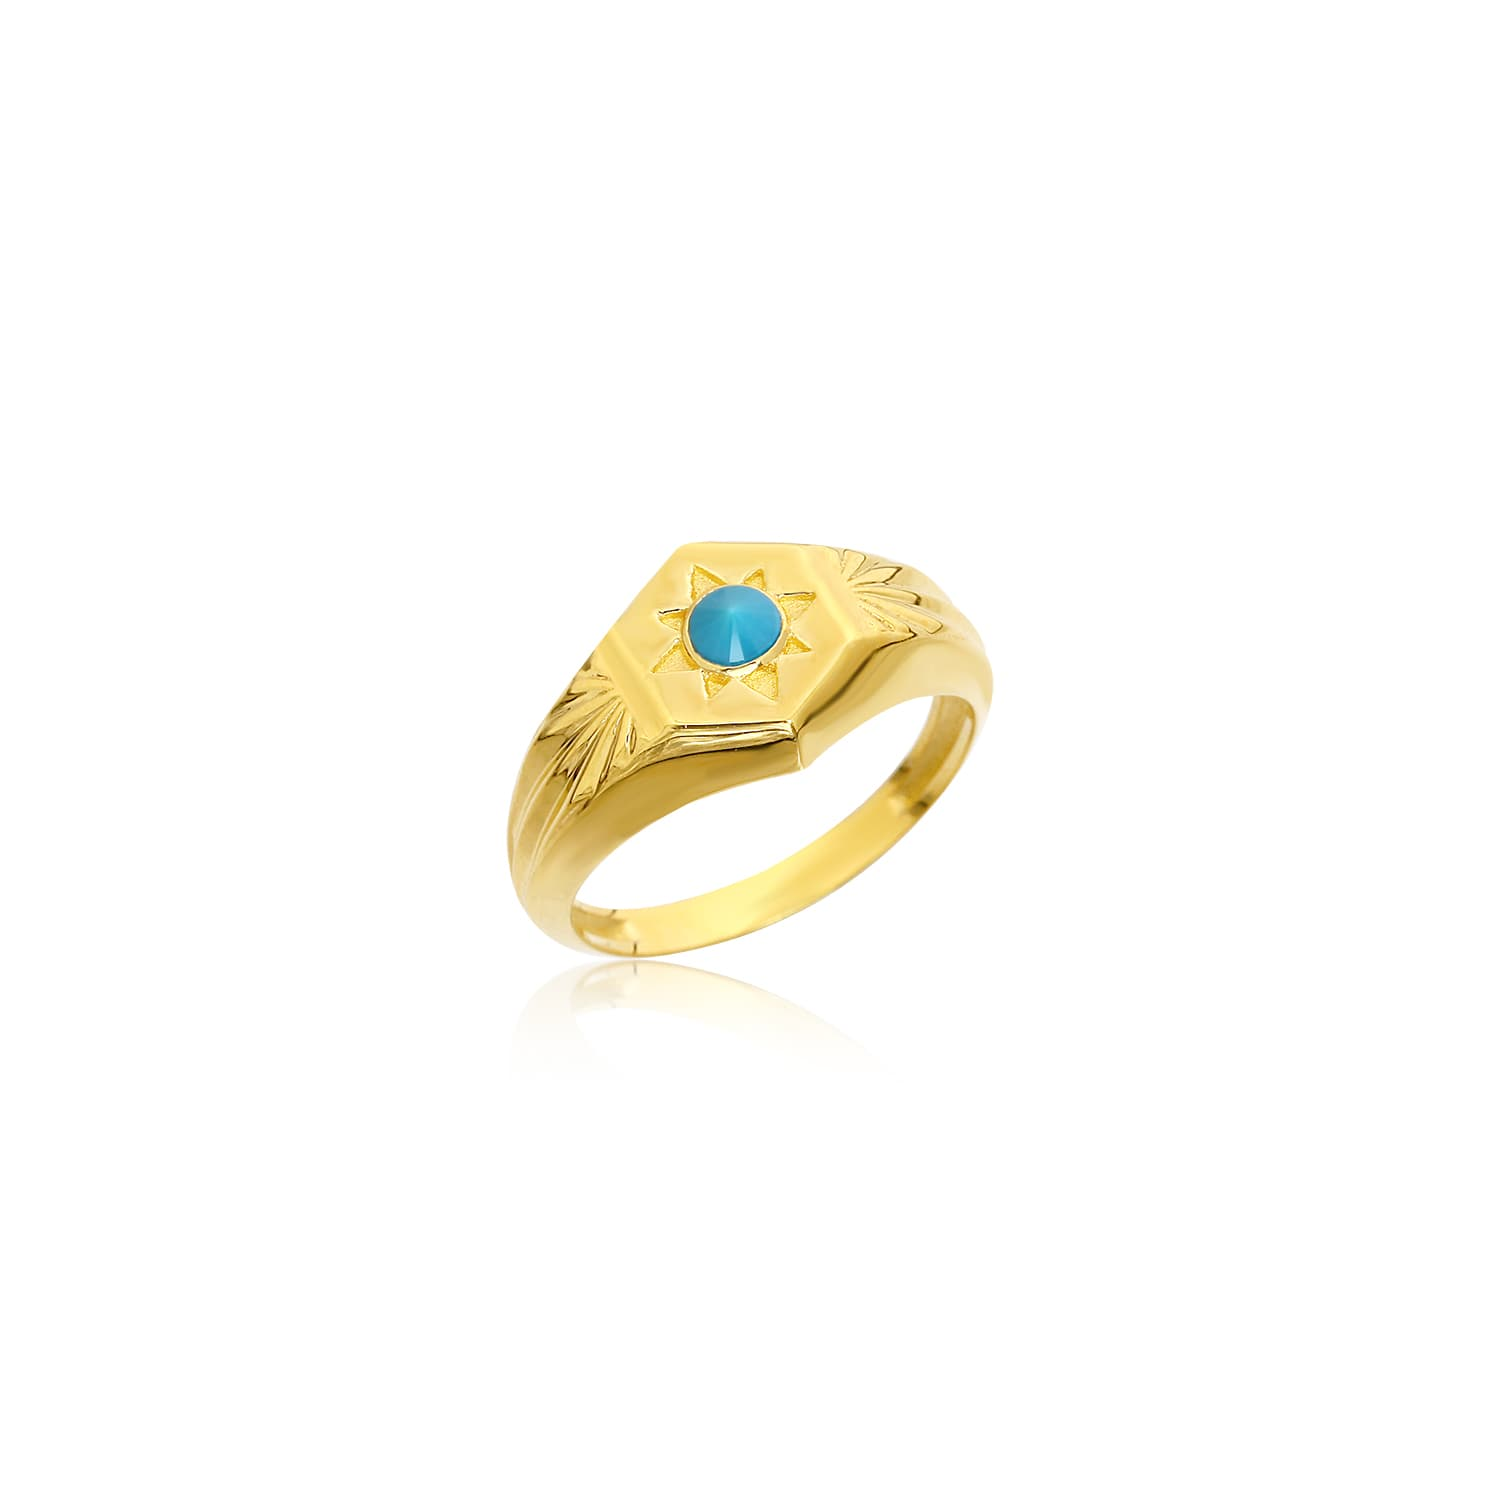 Gold plated turquoise stone ring models